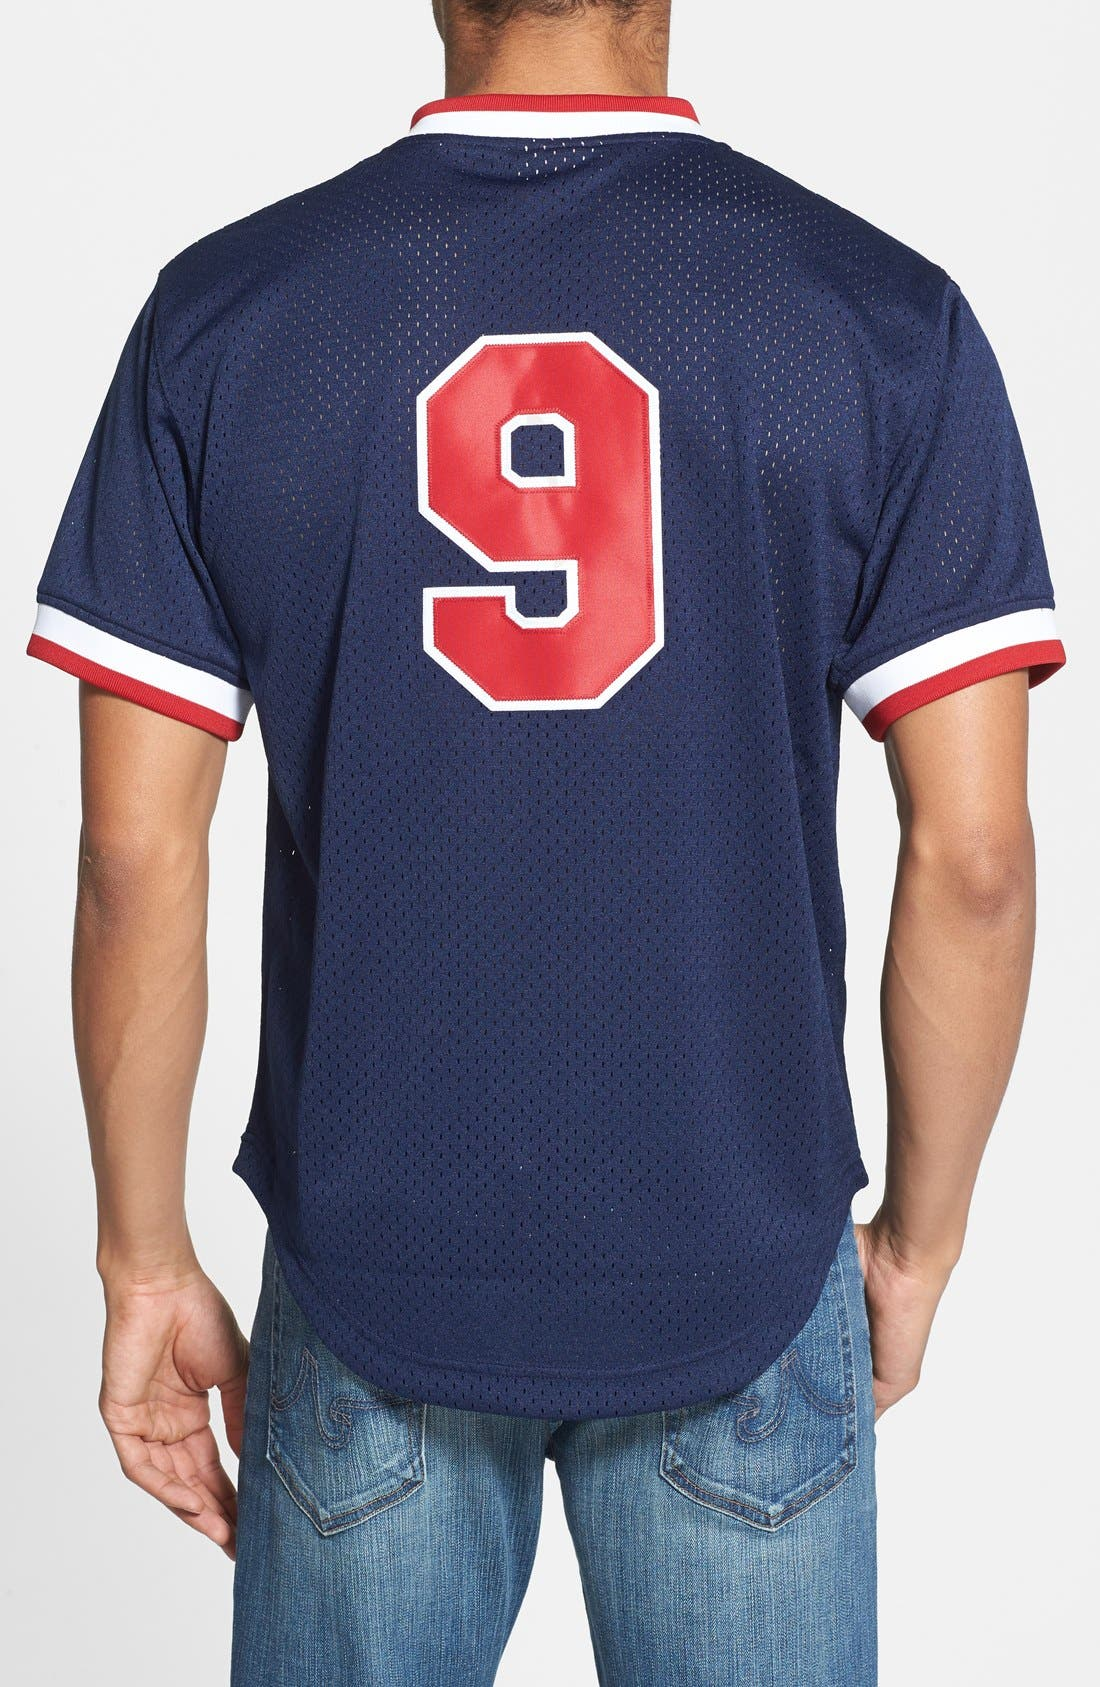 Alternate Image 2  - Mitchell & Ness 'Ted Williams - Boston Red Sox' Authentic Mesh BP Jersey